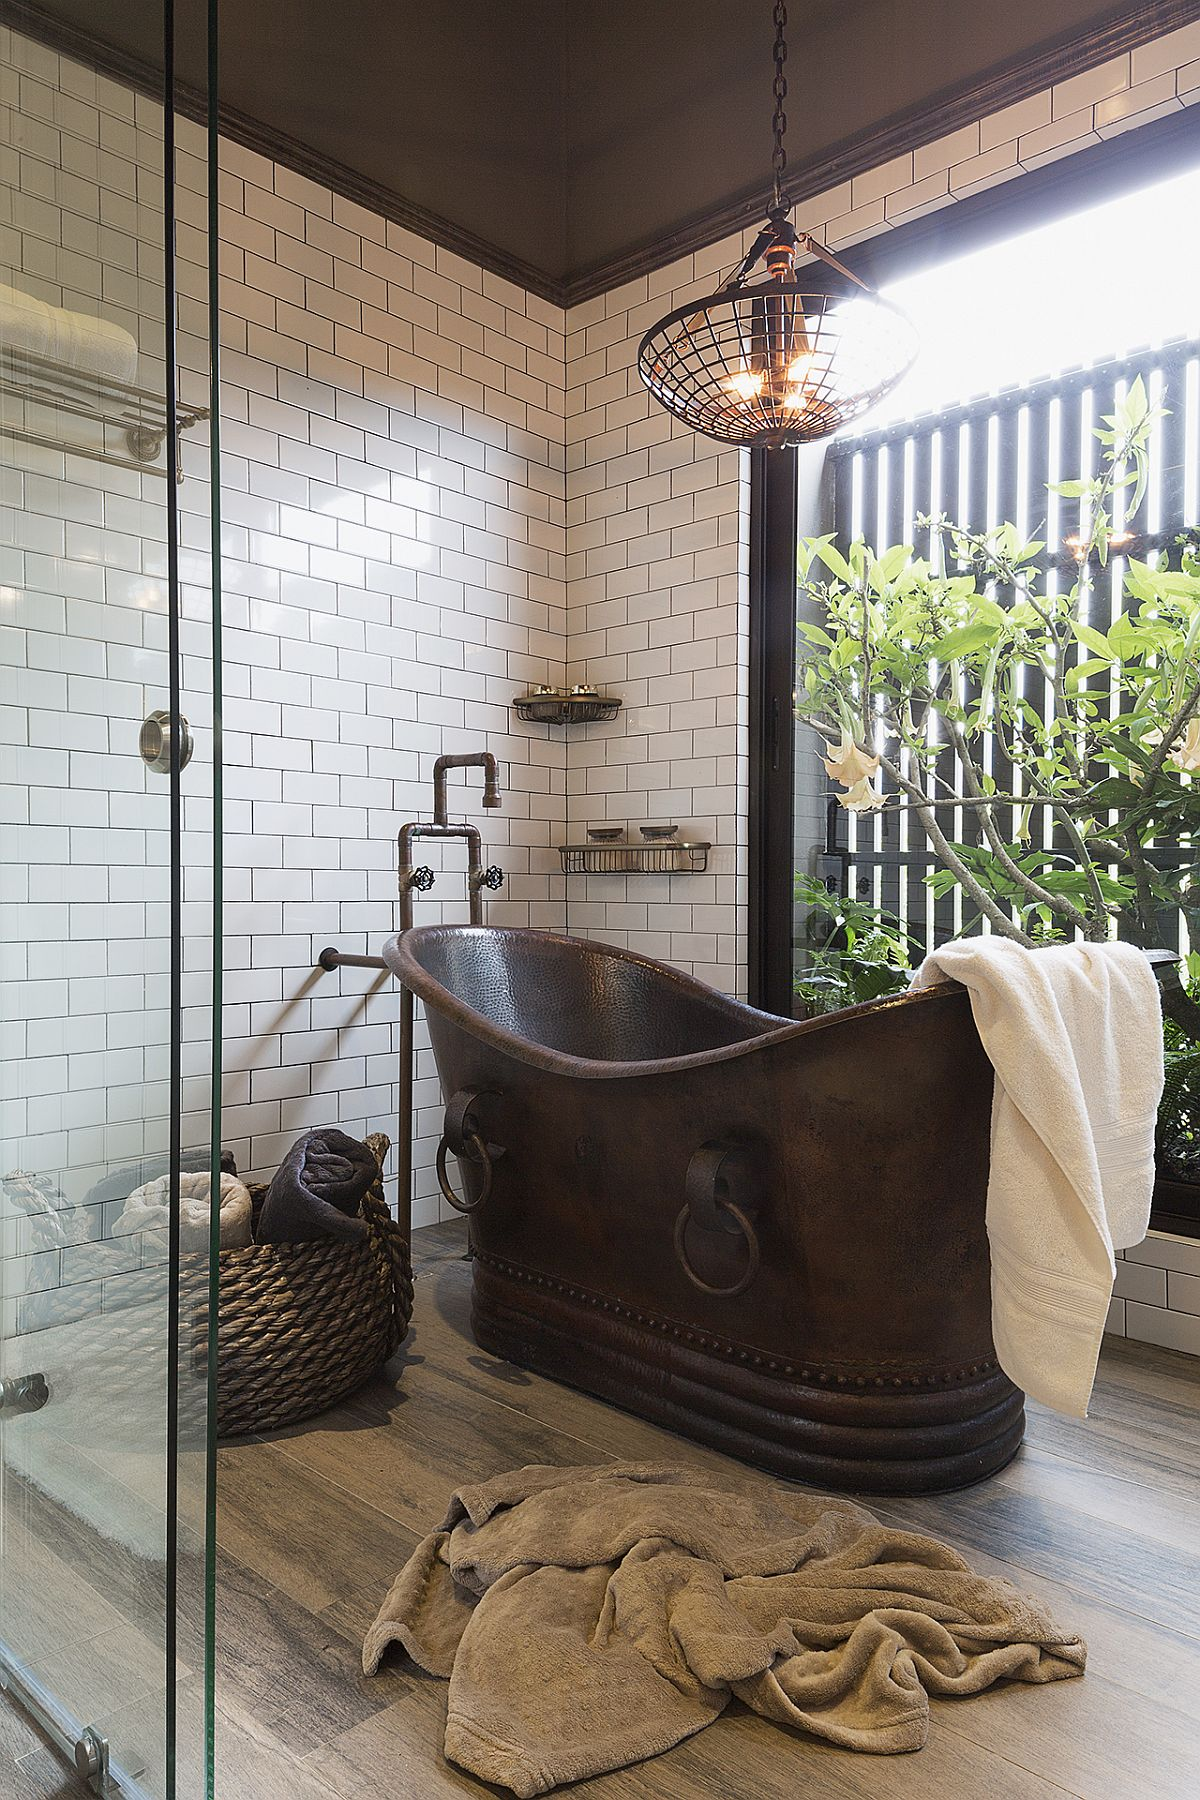 Copper-bathtub-alog-with-glass-walls-and-greenery-adds-uniqueness-to-the-bathroom-80077